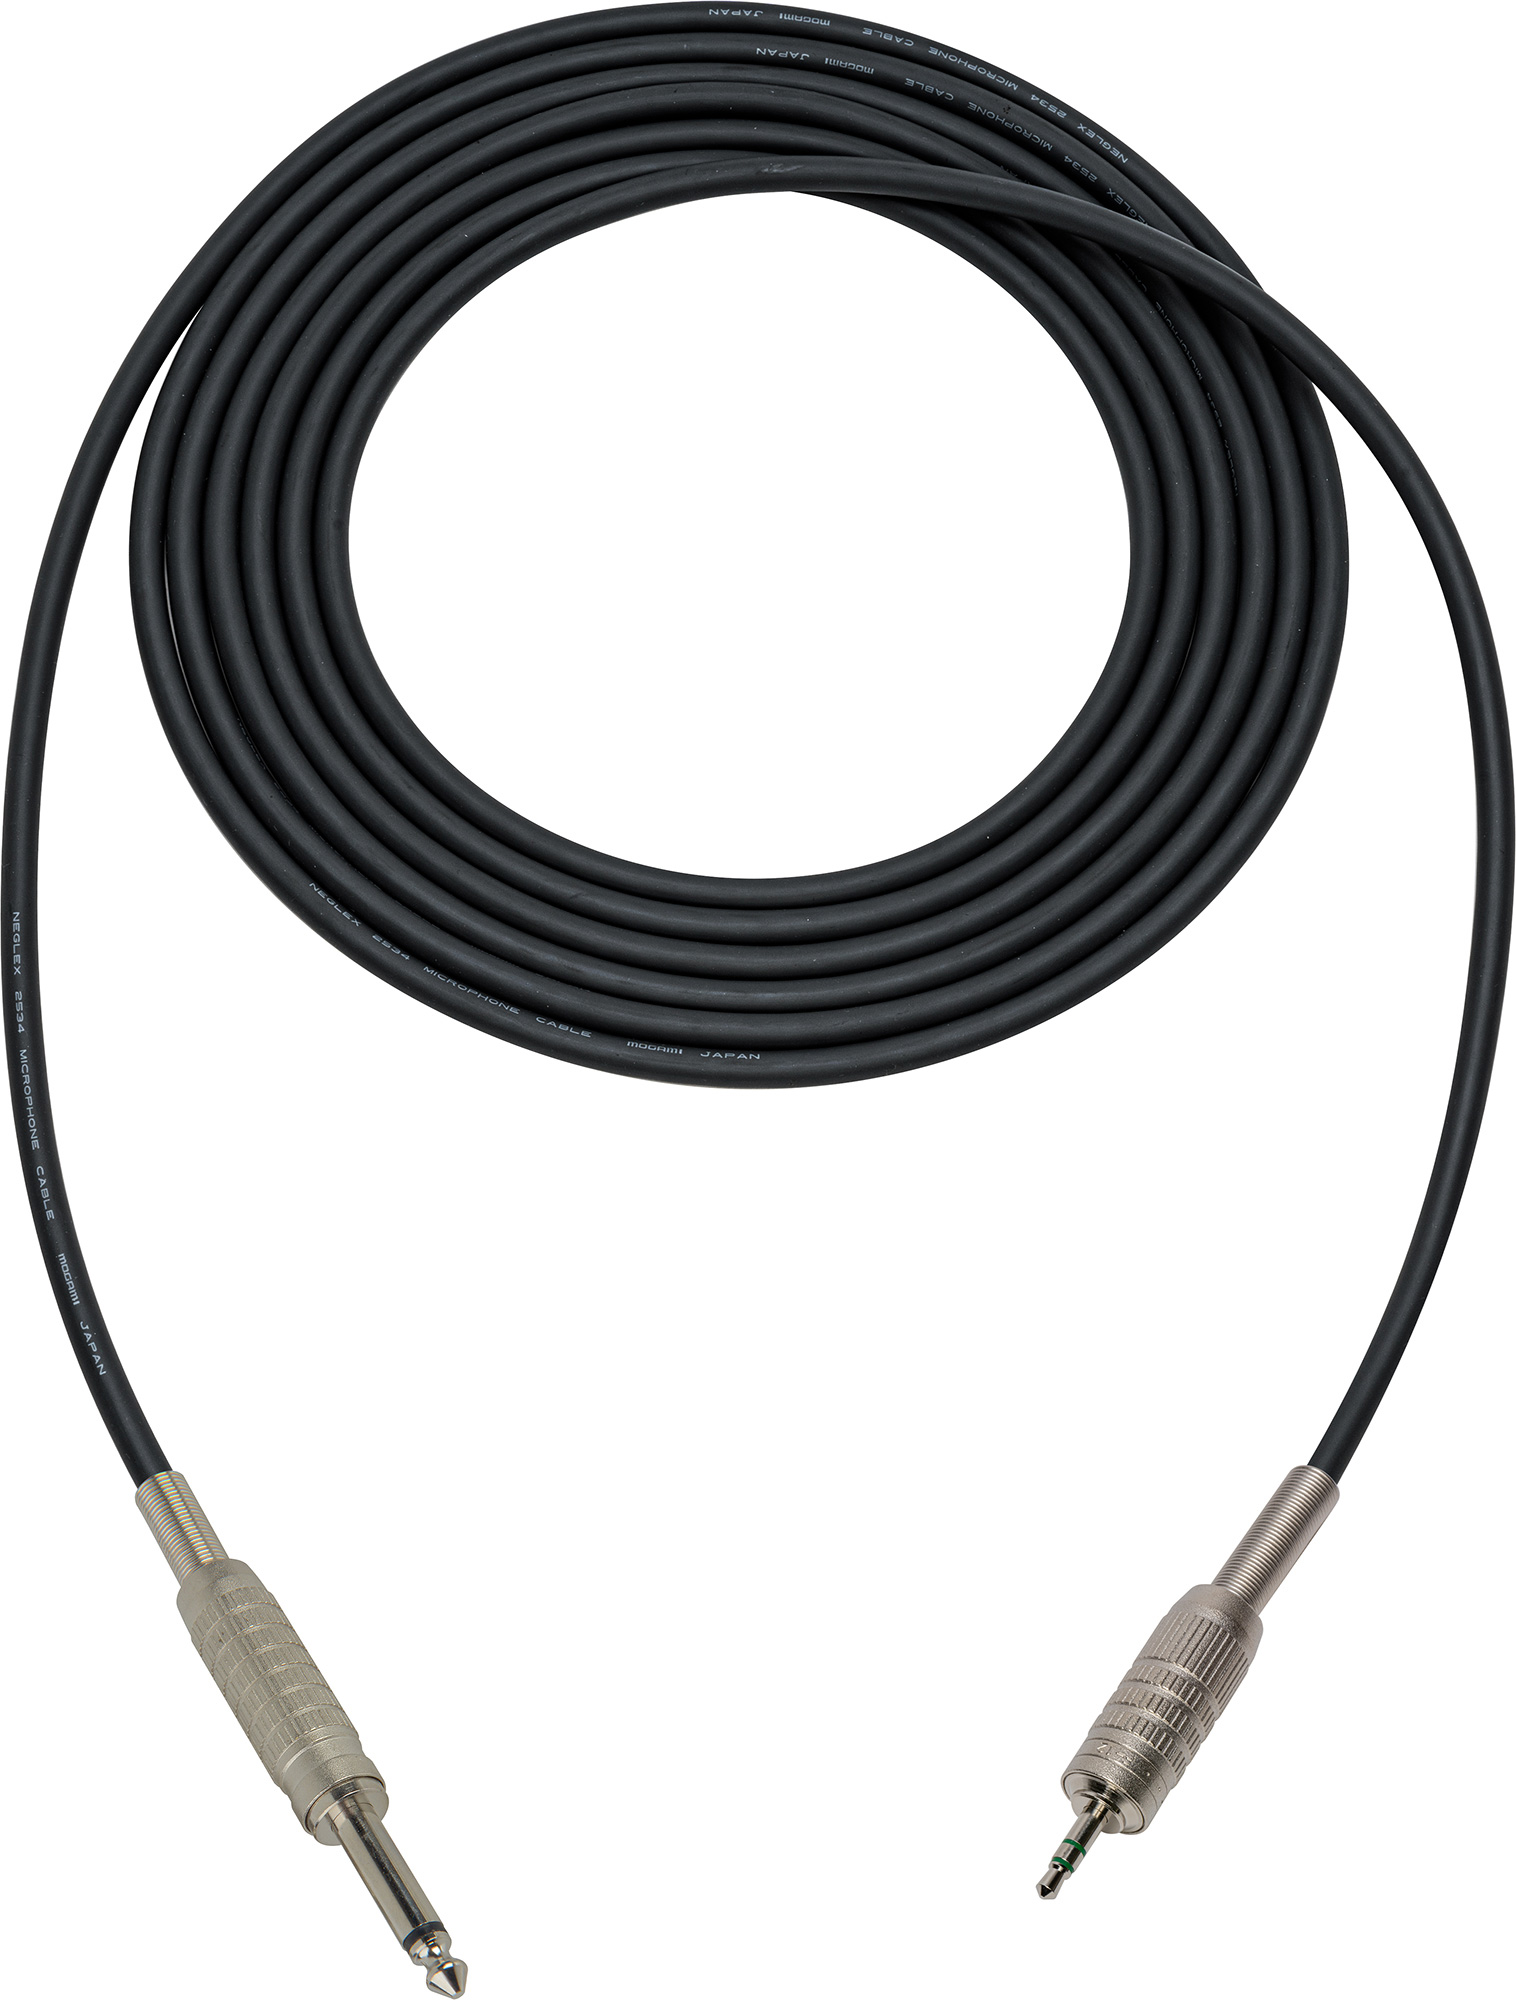 Mogami Audio Cable 14 In Ts Male To 35mm Mini Trs Male 15 Foot